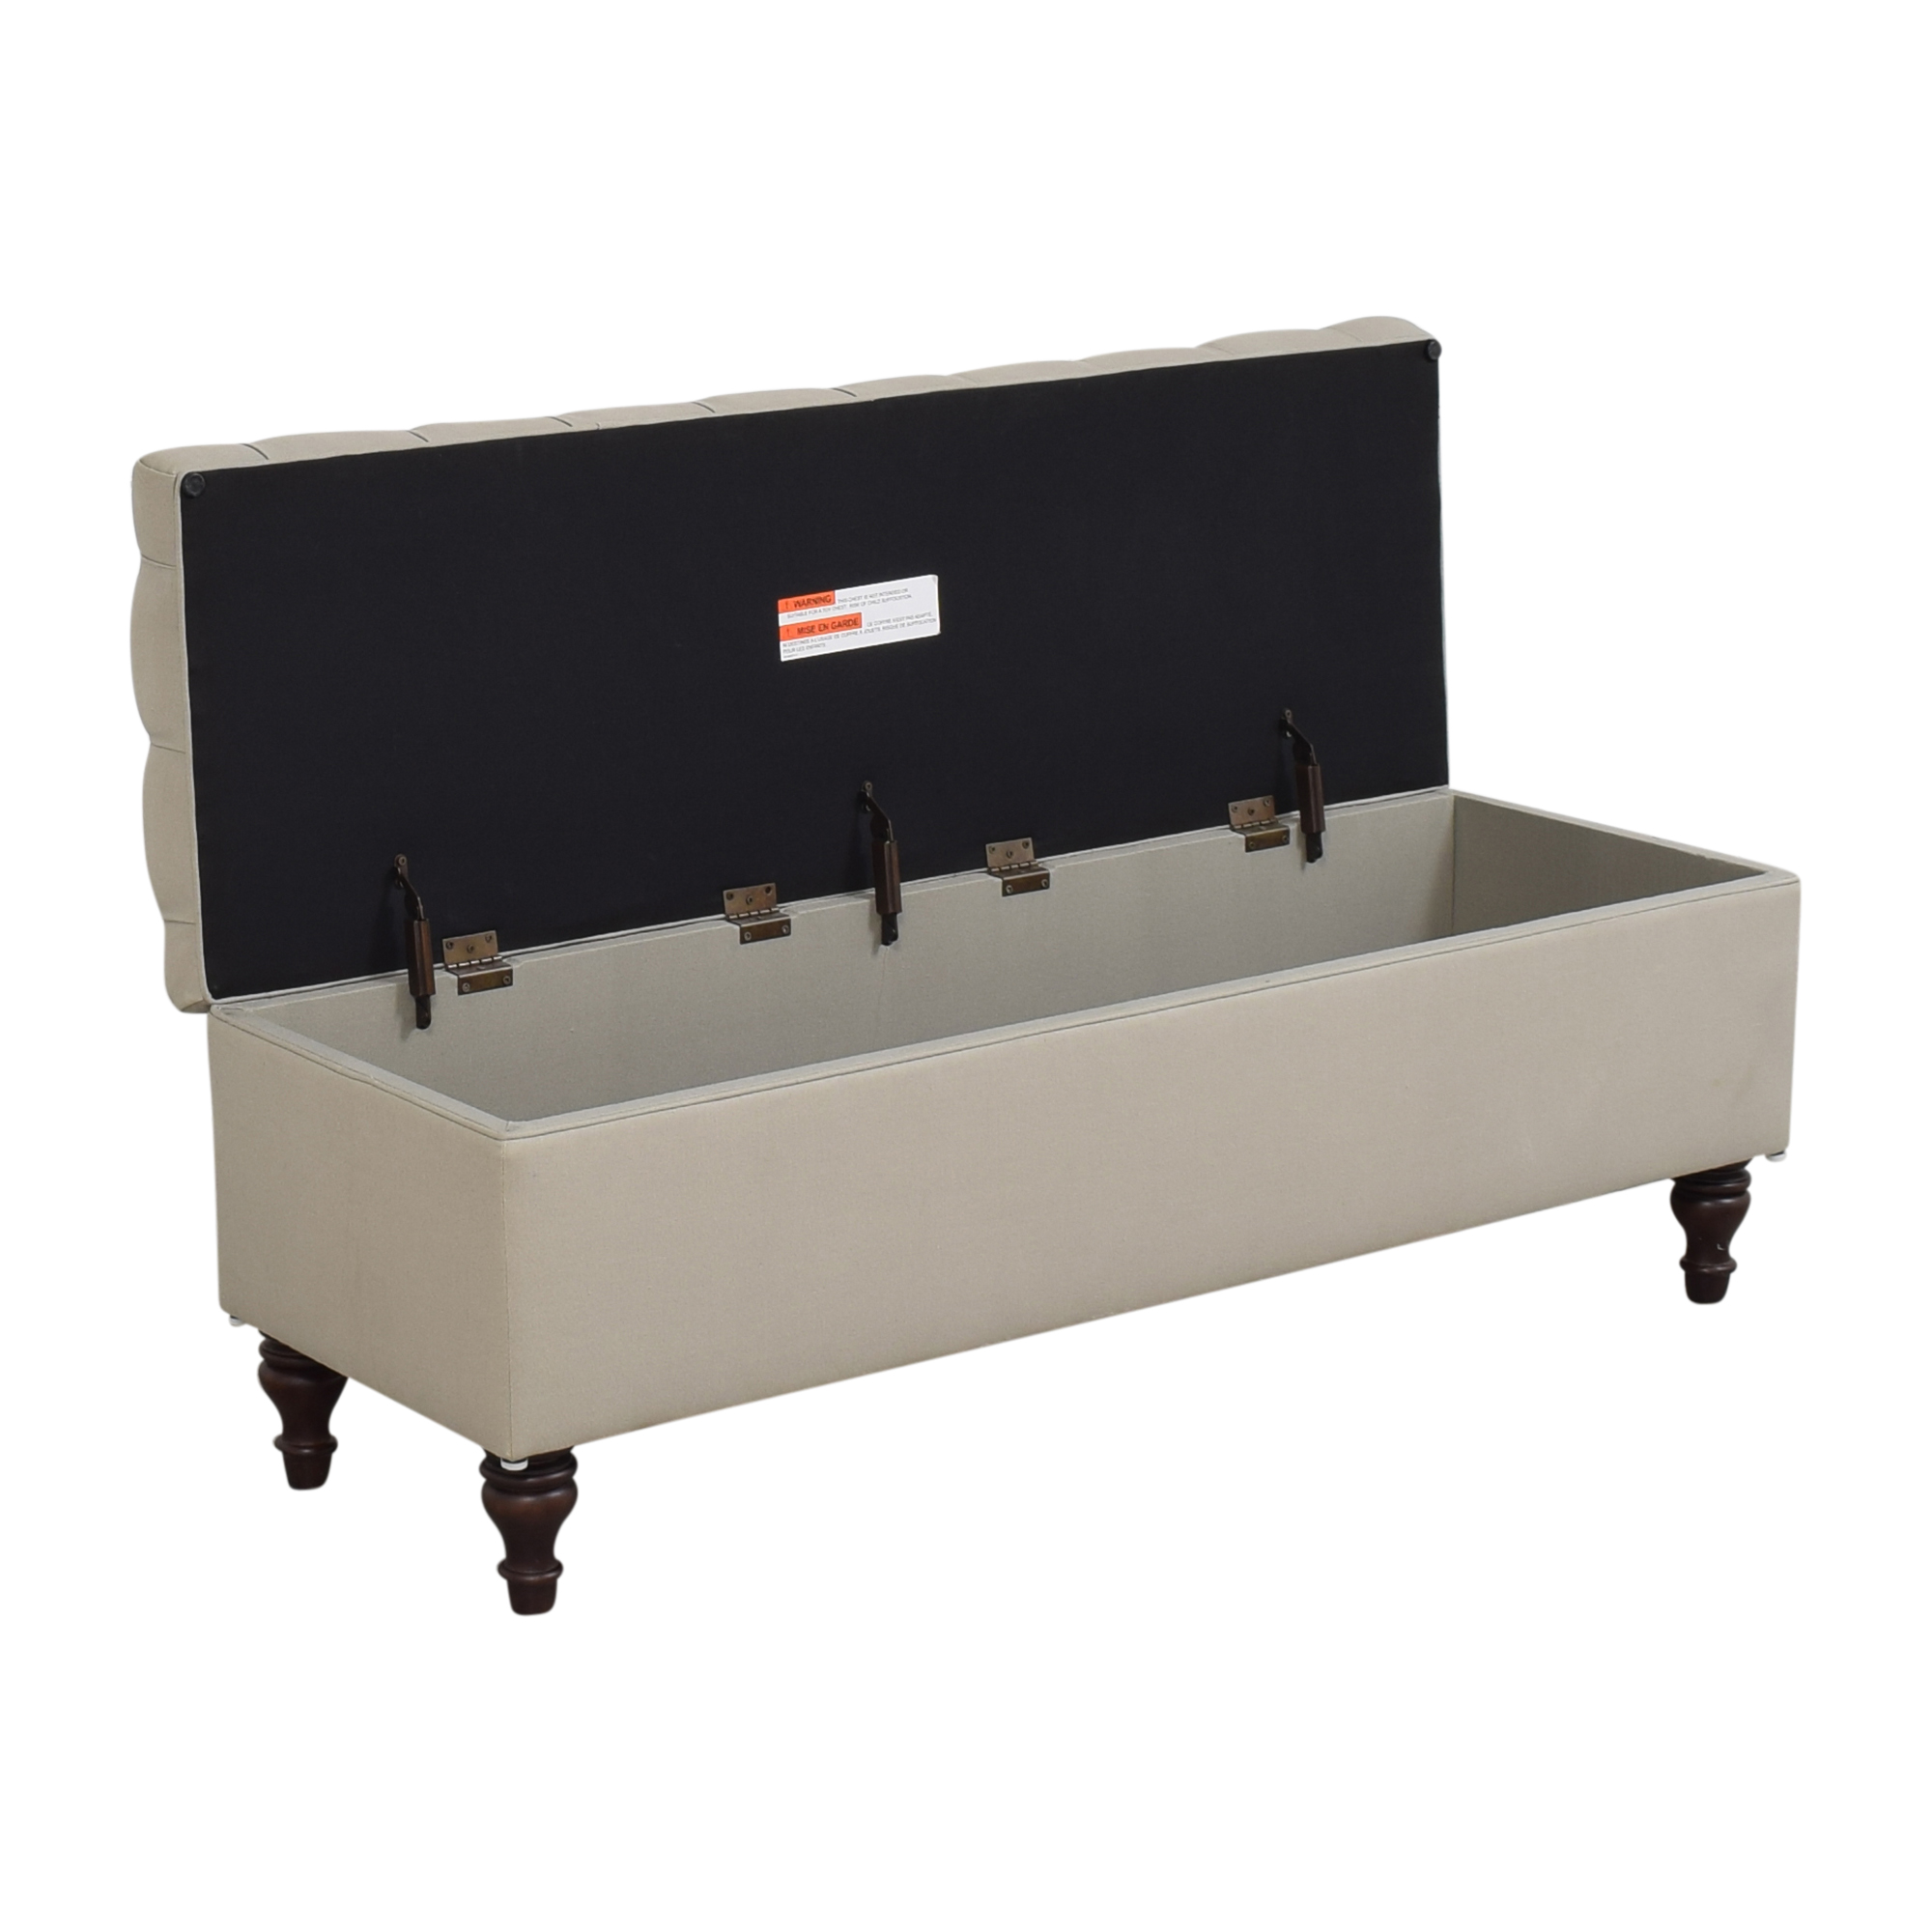 Pottery Barn Pottery Barn Lorraine Tufted Upholstered Queen Storage Bench for sale